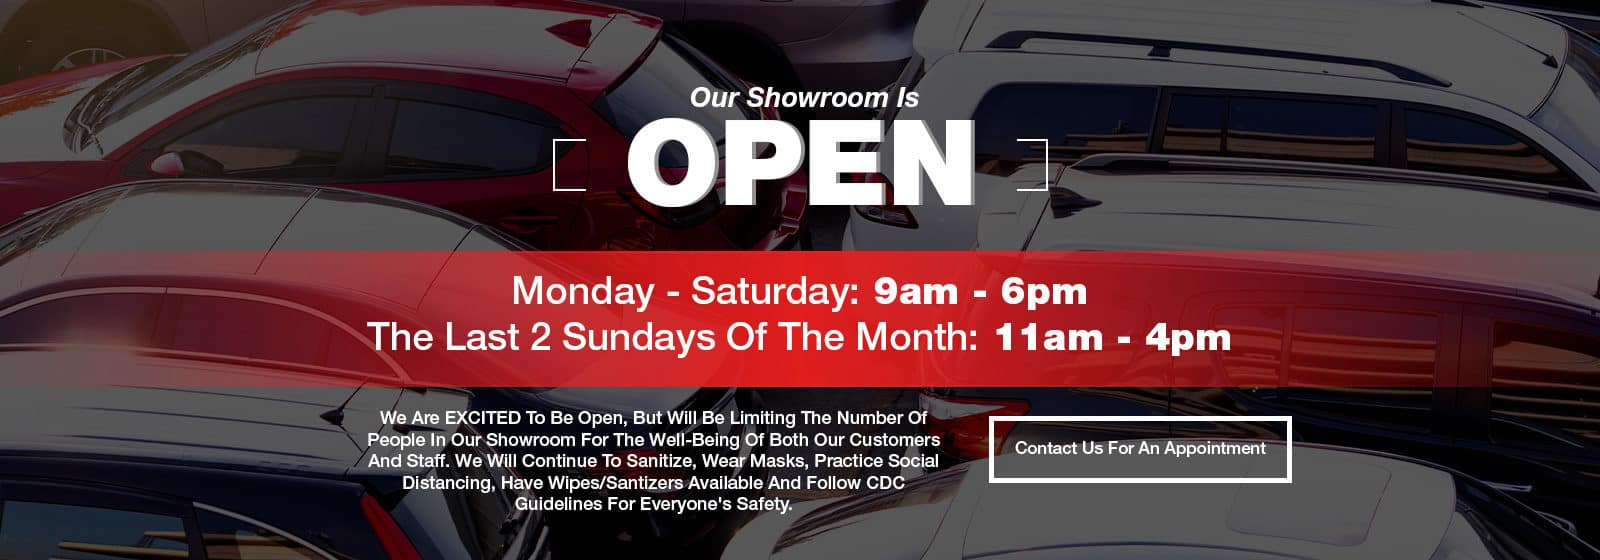 Our Showroom Is Open